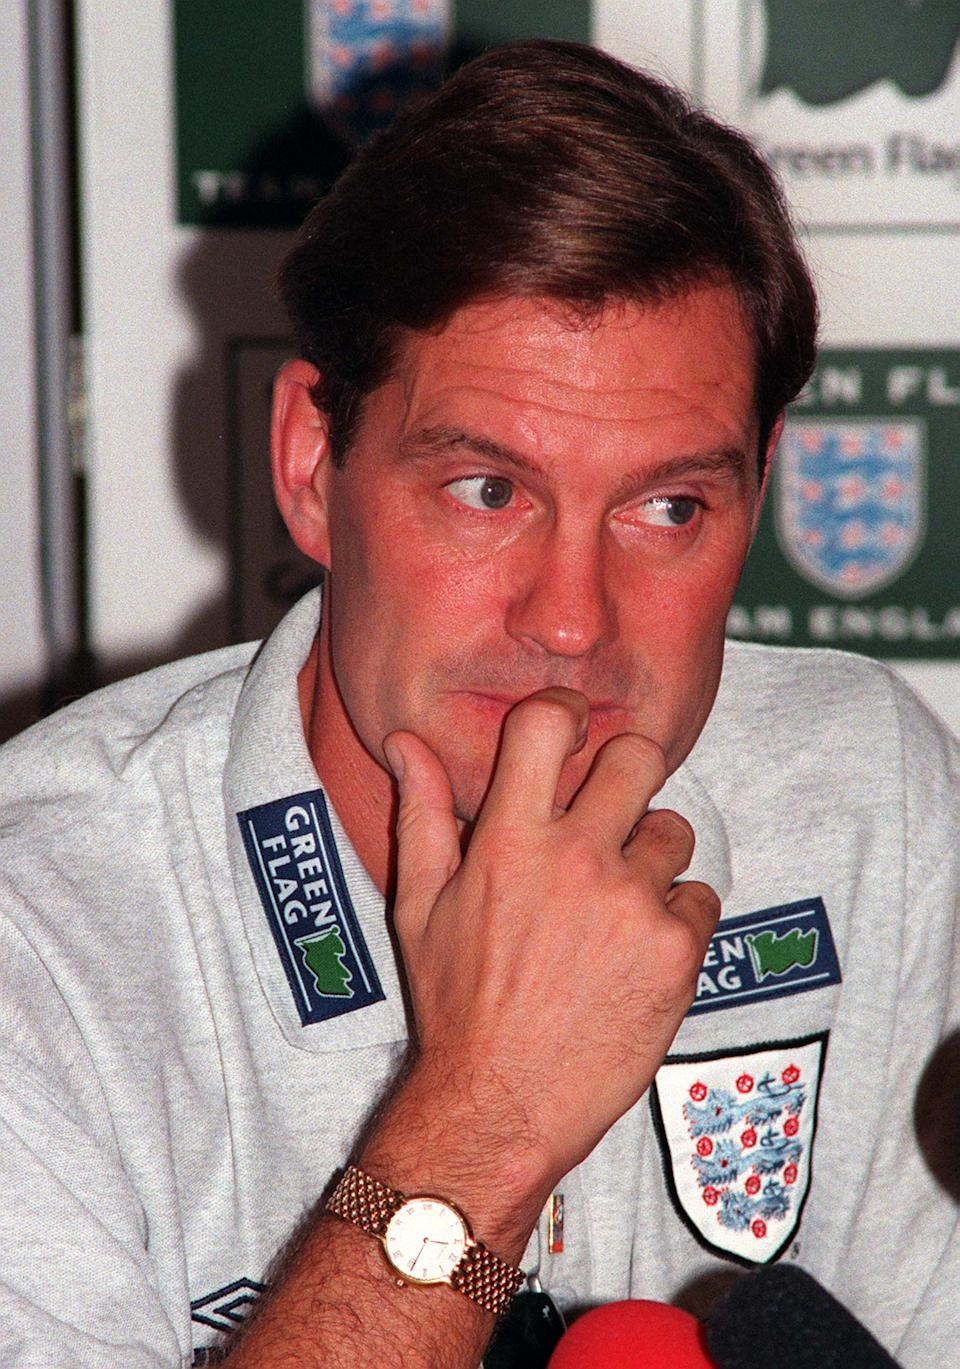 England's coach Glenn Hoddle ponders a question during a press conference in Rome, Thursday, October 9, 1997. England will play Italy in a Soccer World Cup group two qualifying match in Rome on Saturday. (AP Photo/Marco Ravagli)